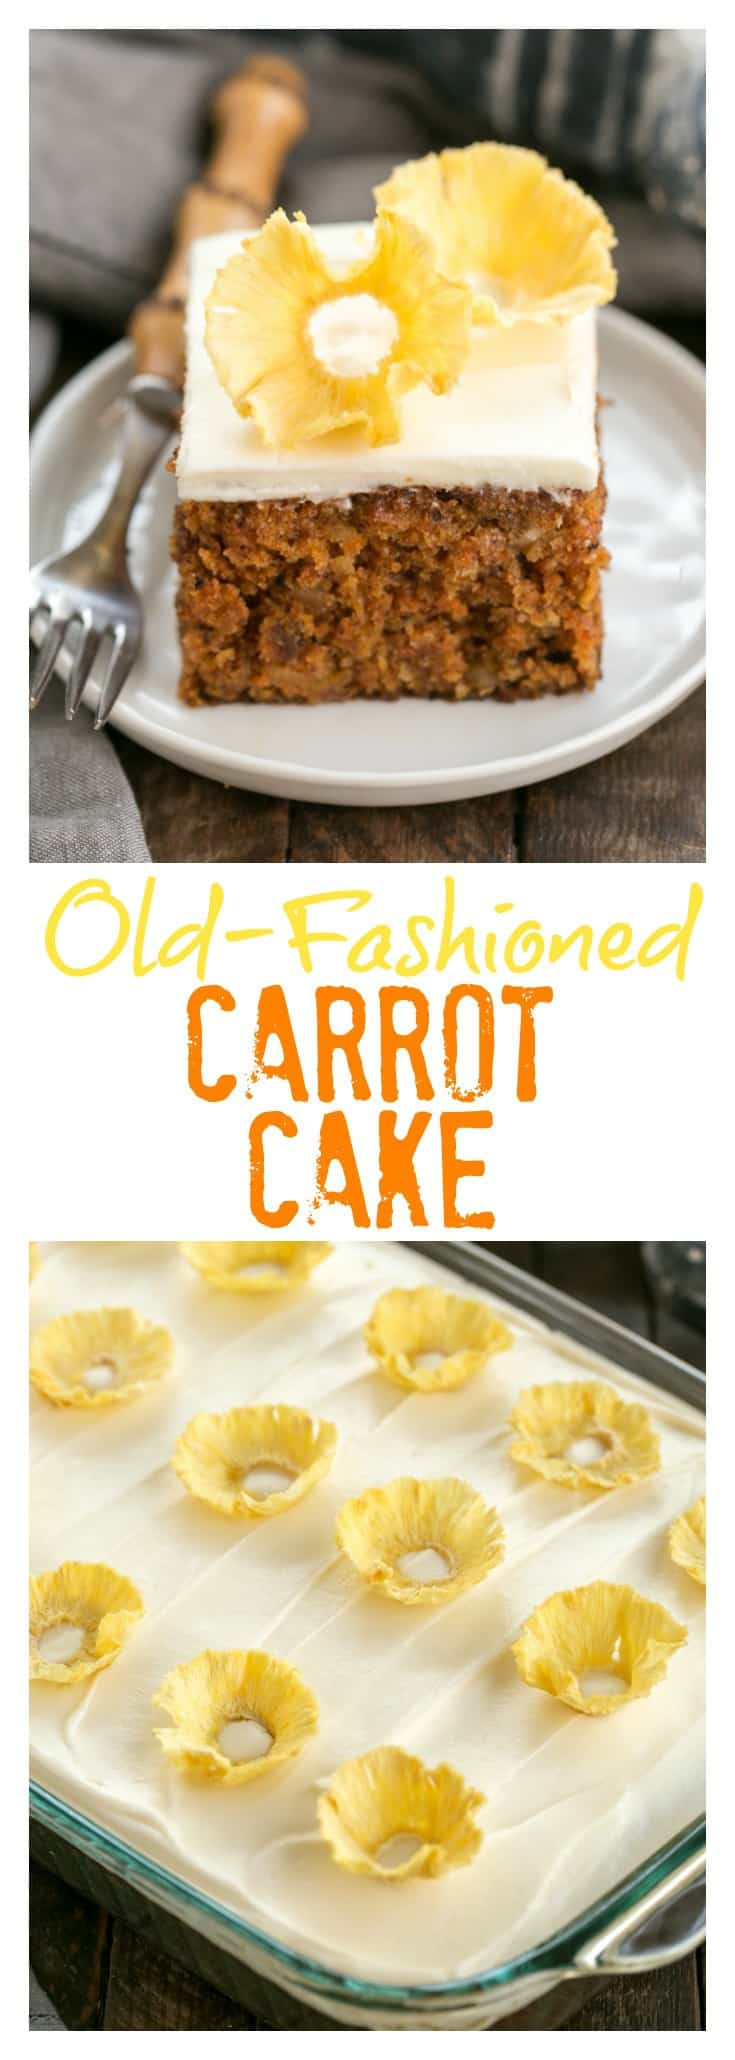 Small Carrot Cake Recipe With Pineapple